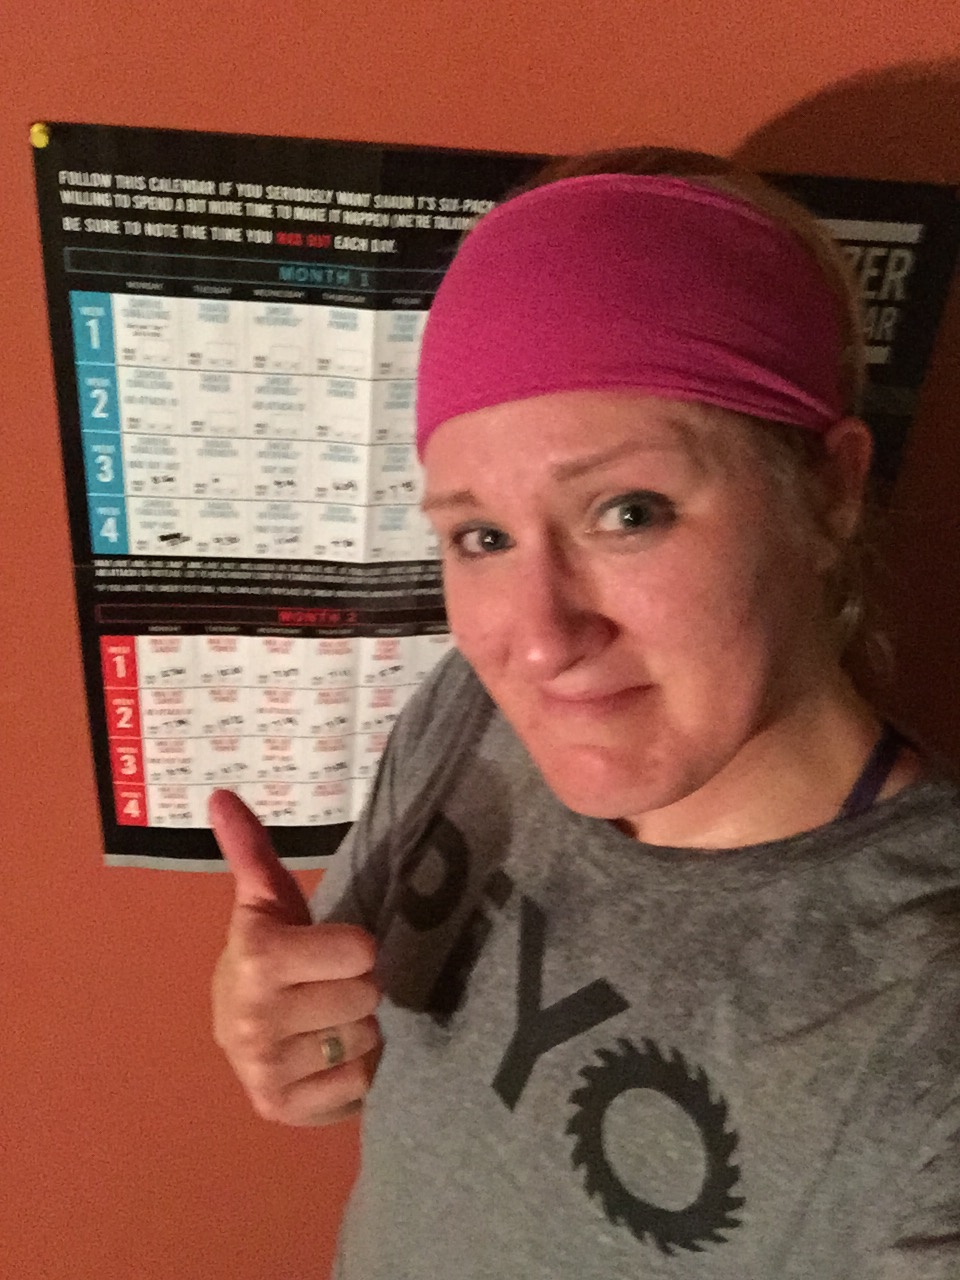 Insanity Max 30 Results - Fitness Coach for Moms   Renee